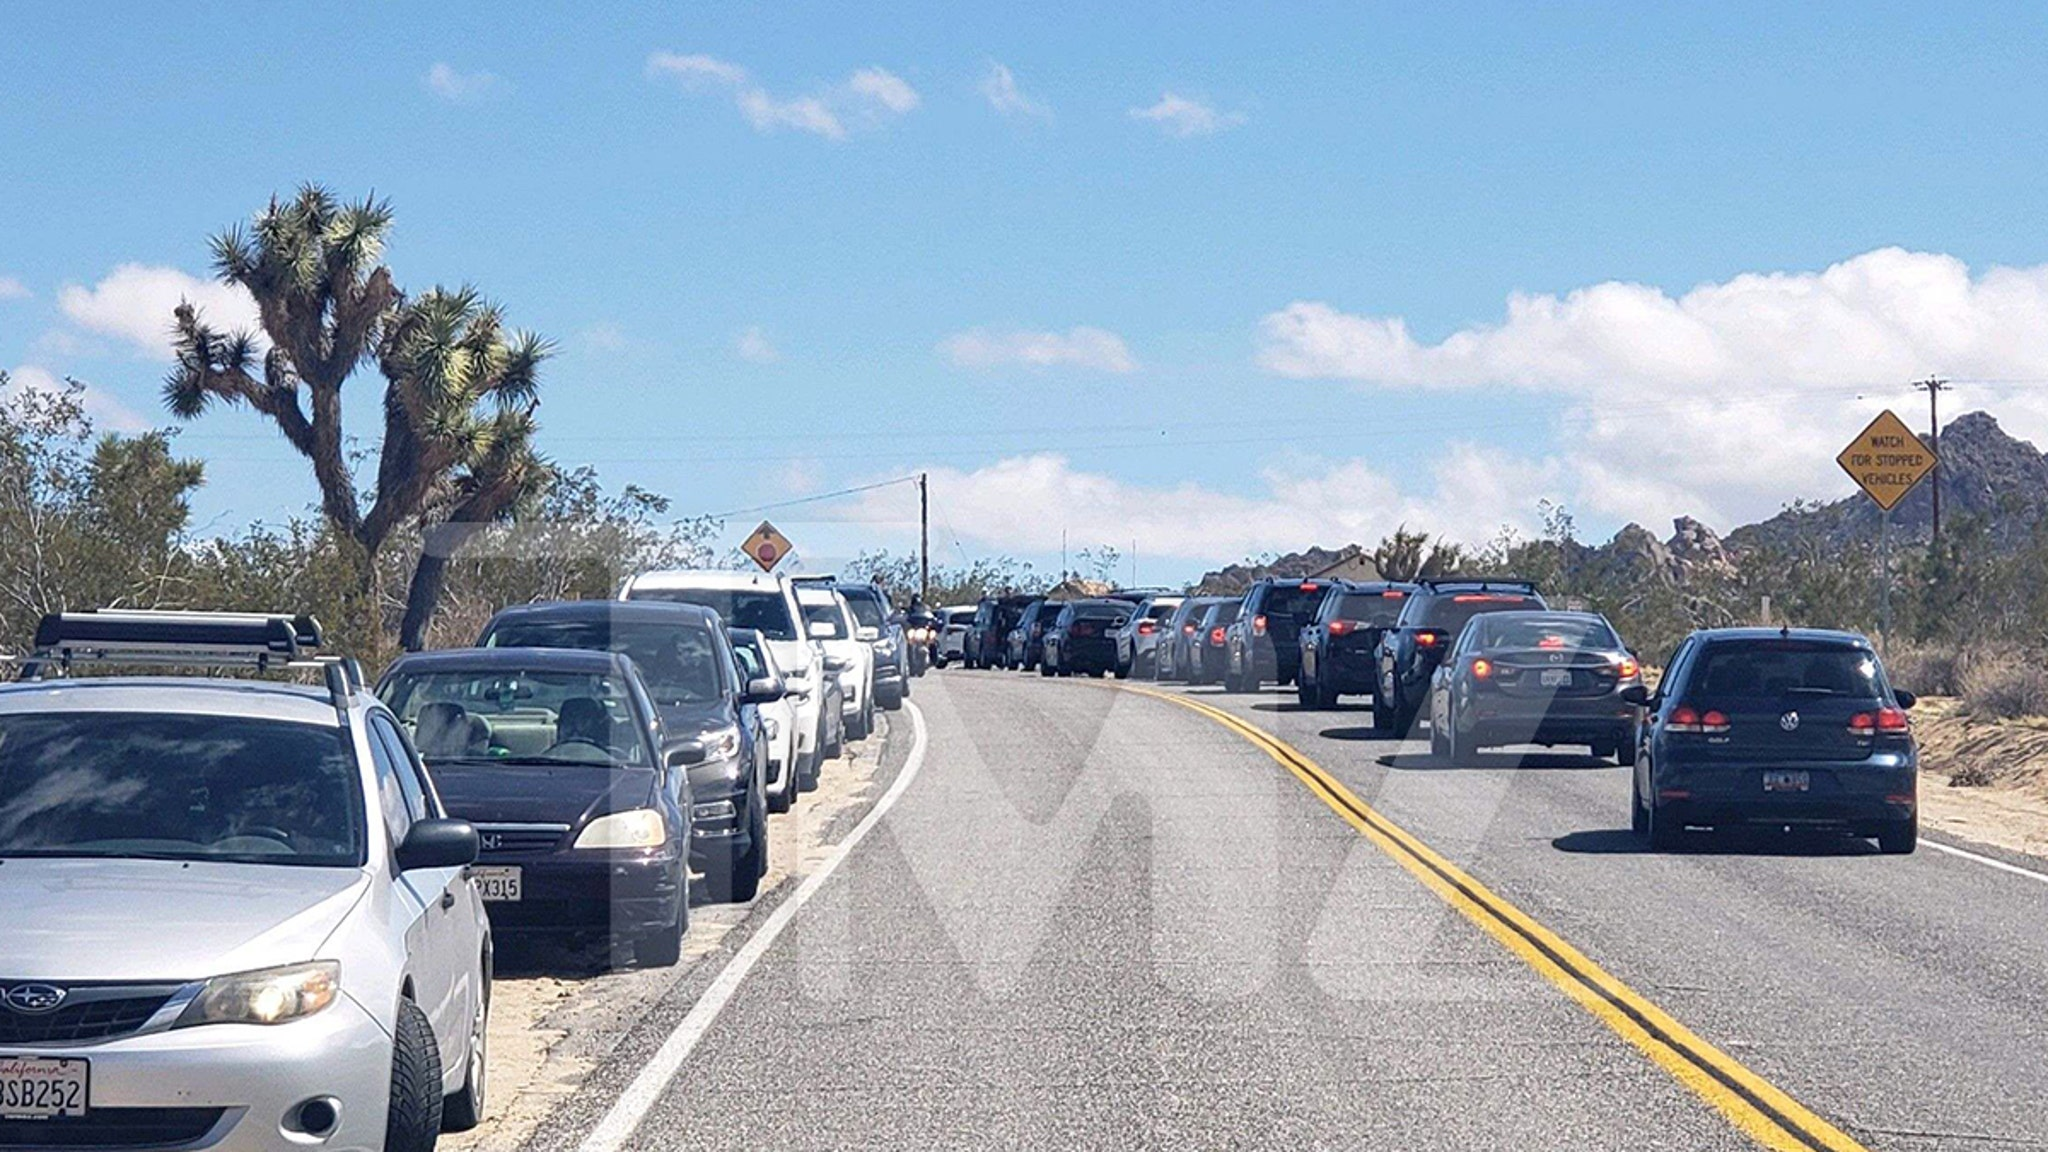 Joshua Tree Park Besieged with Out-of-Towners, Local Neighbors Pissed